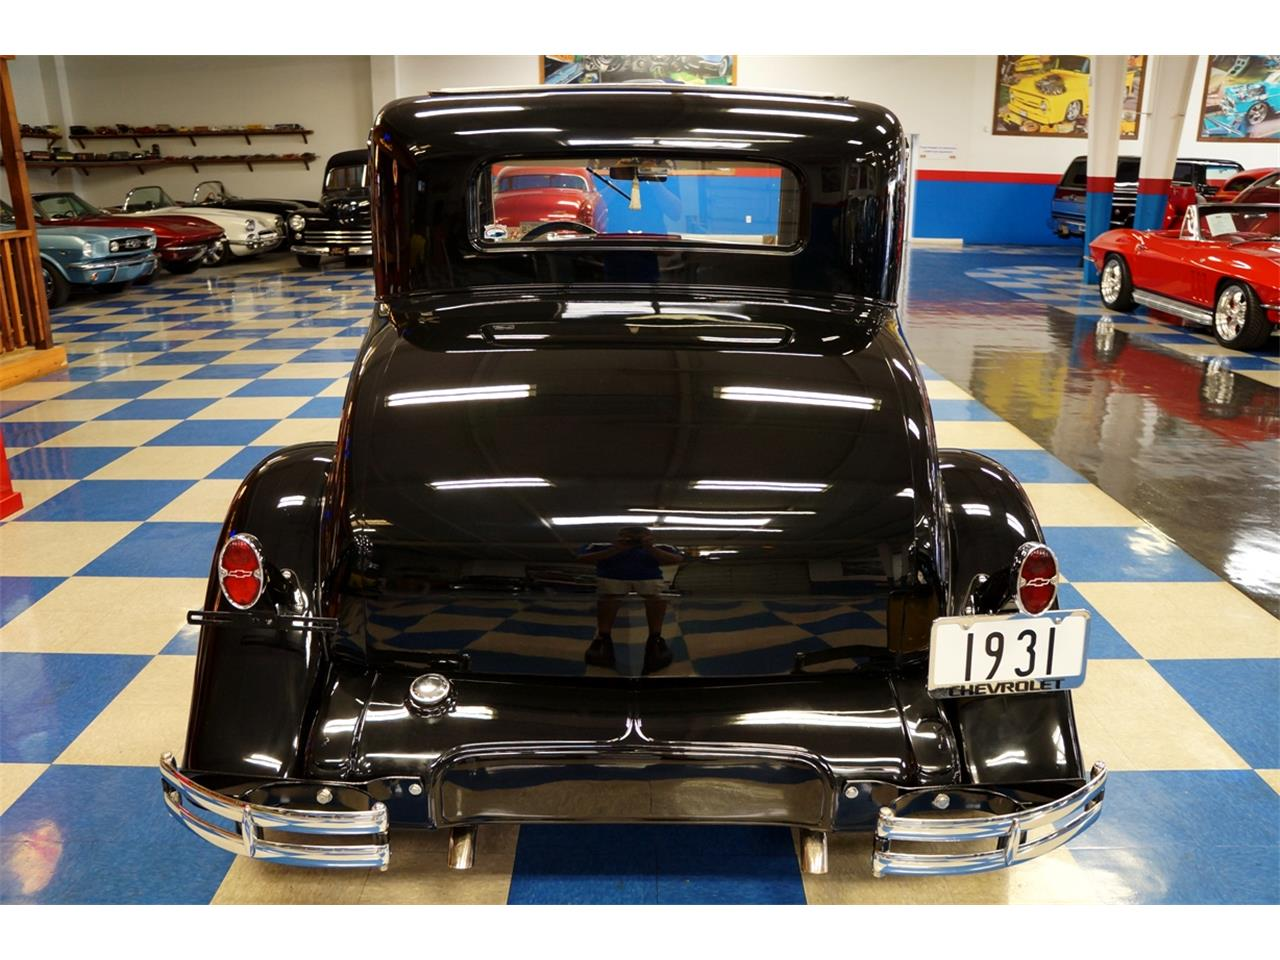 Large Picture of '31 Chevrolet Coupe located in New Braunfels Texas - $42,900.00 Offered by A&E Classic Cars - KQDD